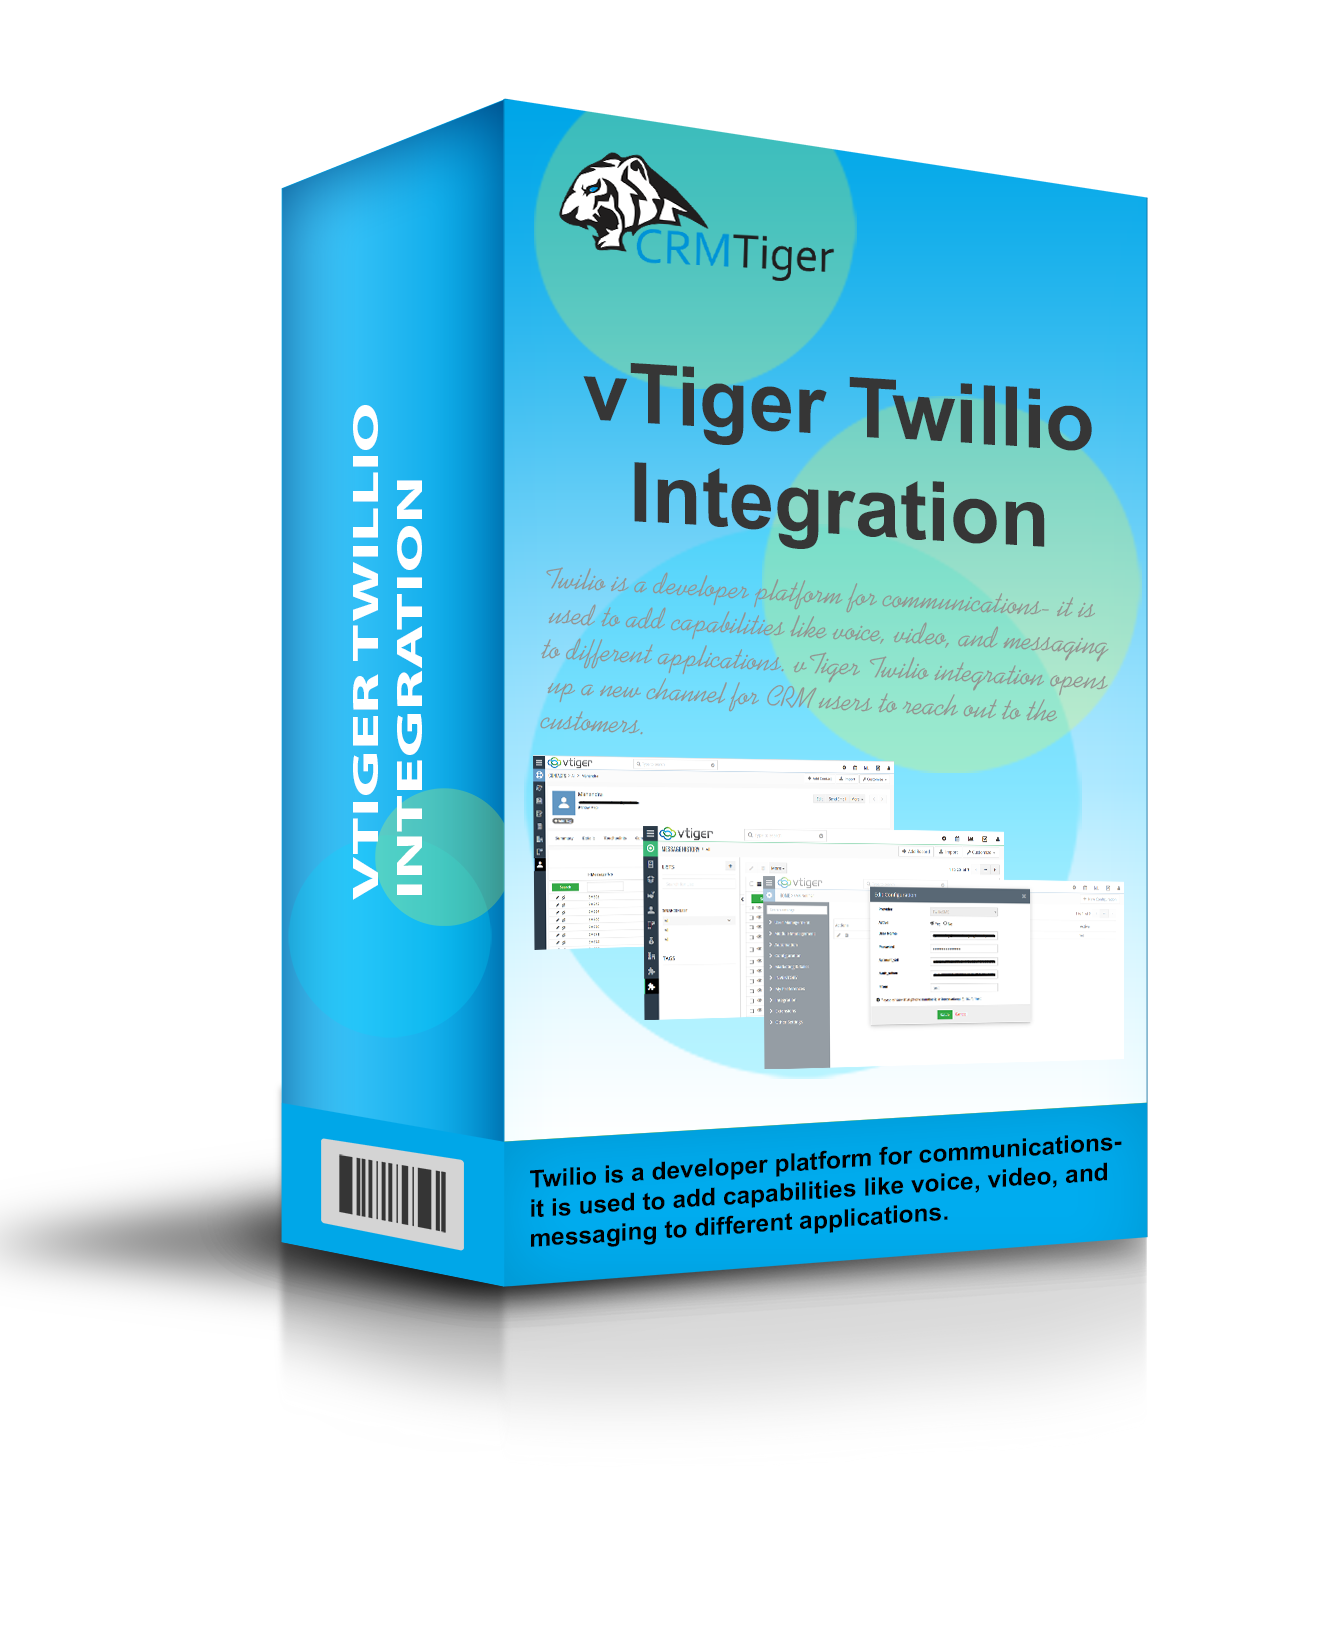 vTiger Twillio Integration